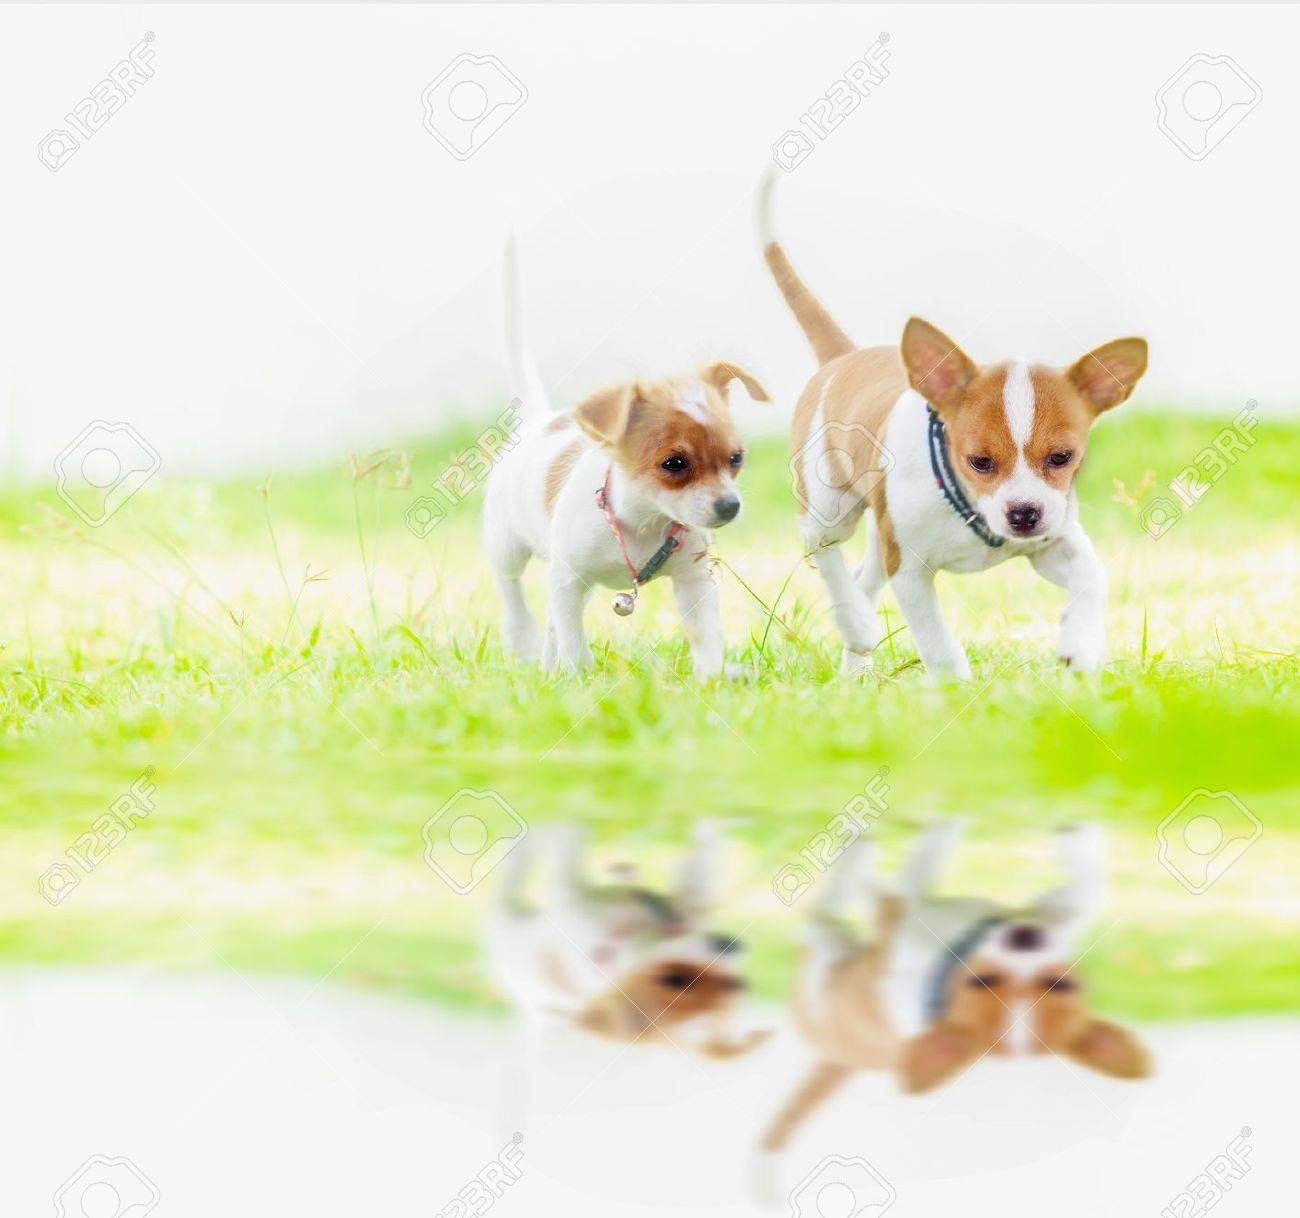 Cute Baby Dog Runing In Nature Background Stock Photo Picture And